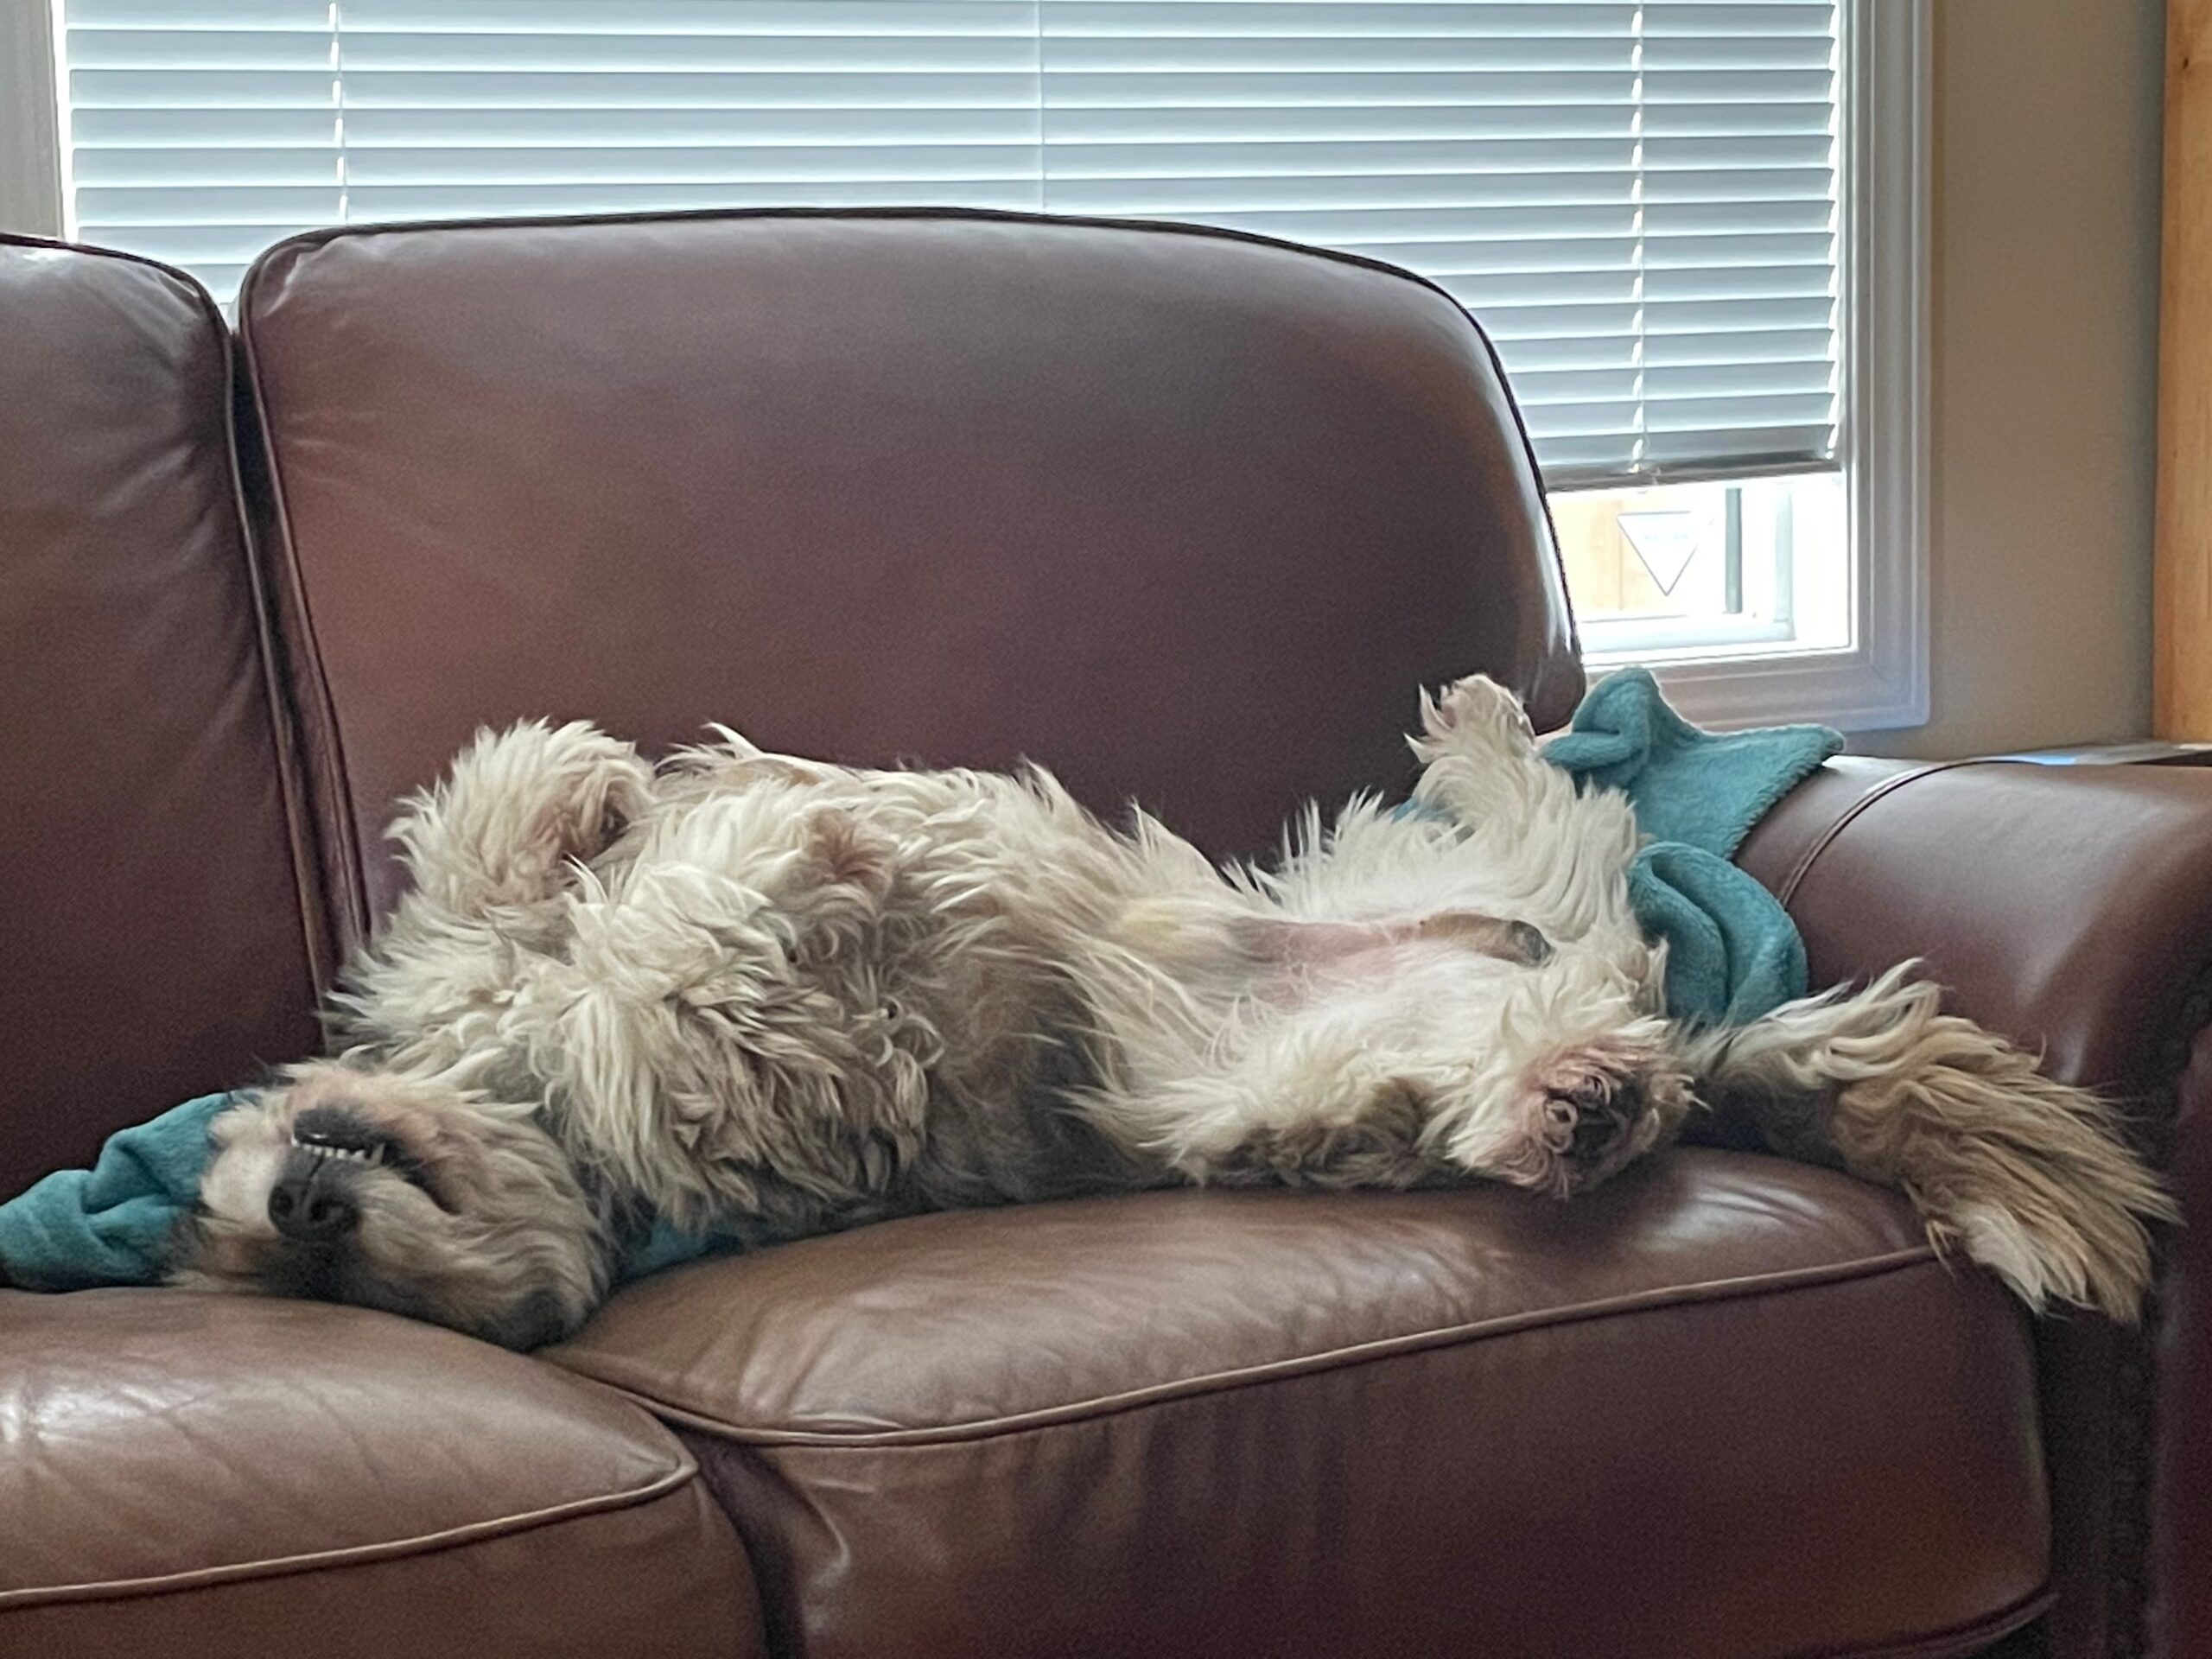 Dog lying on his back on the couch